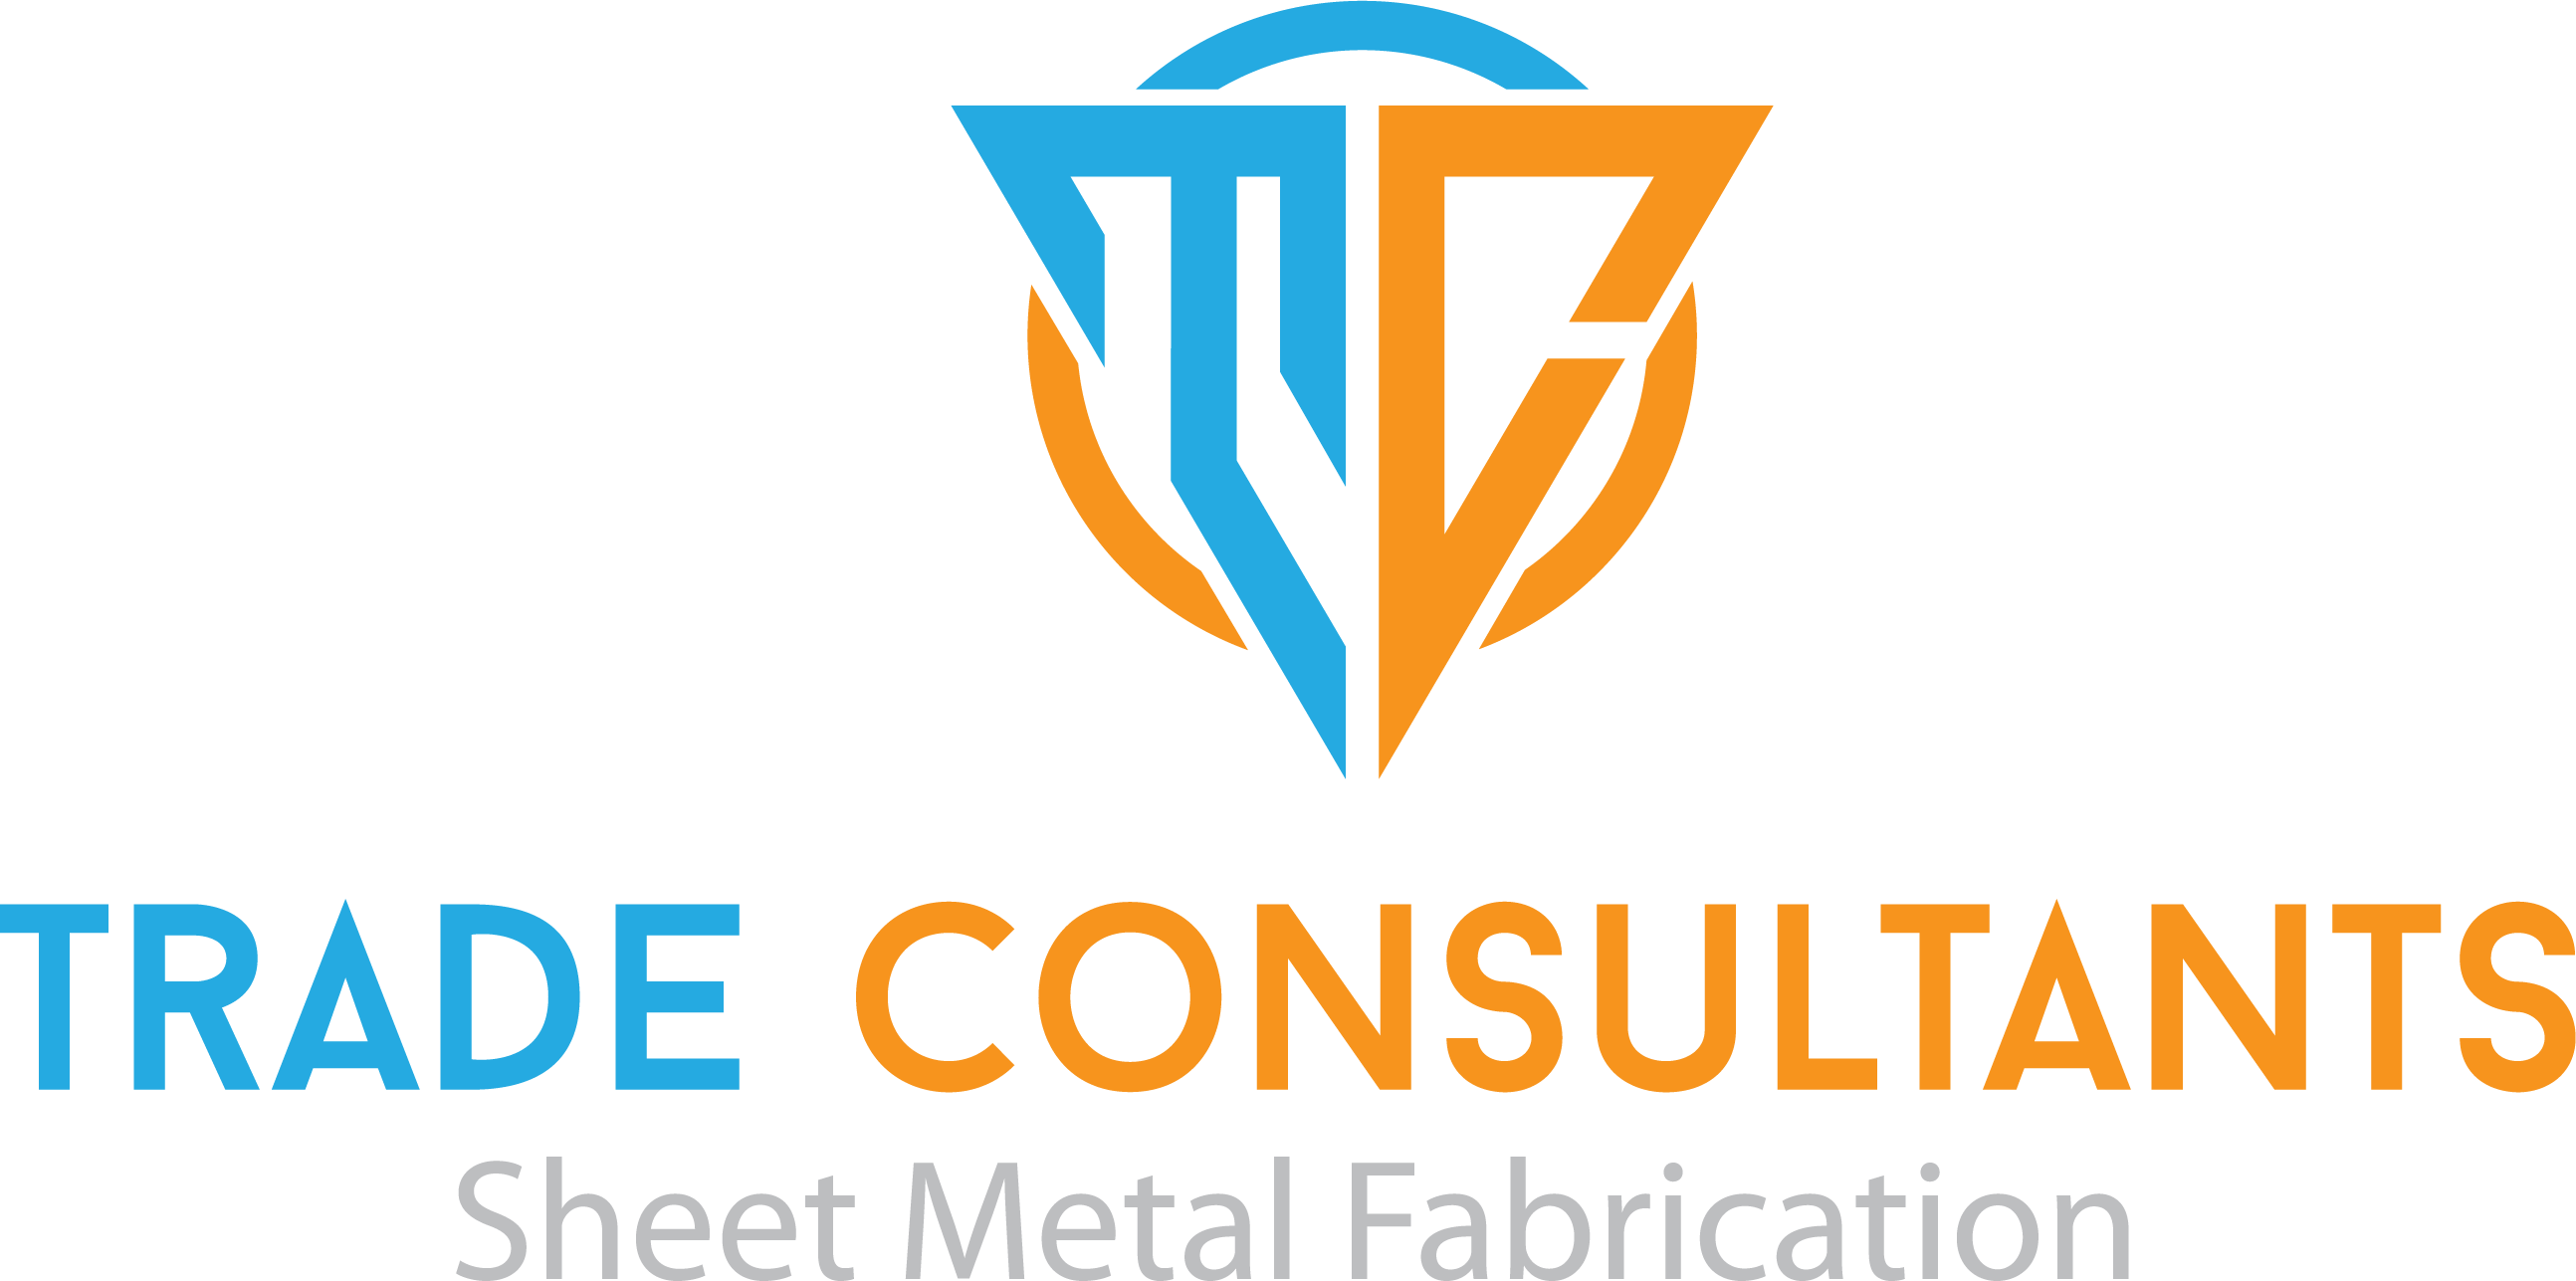 Trade Consultants Sheet Metal Fabrication